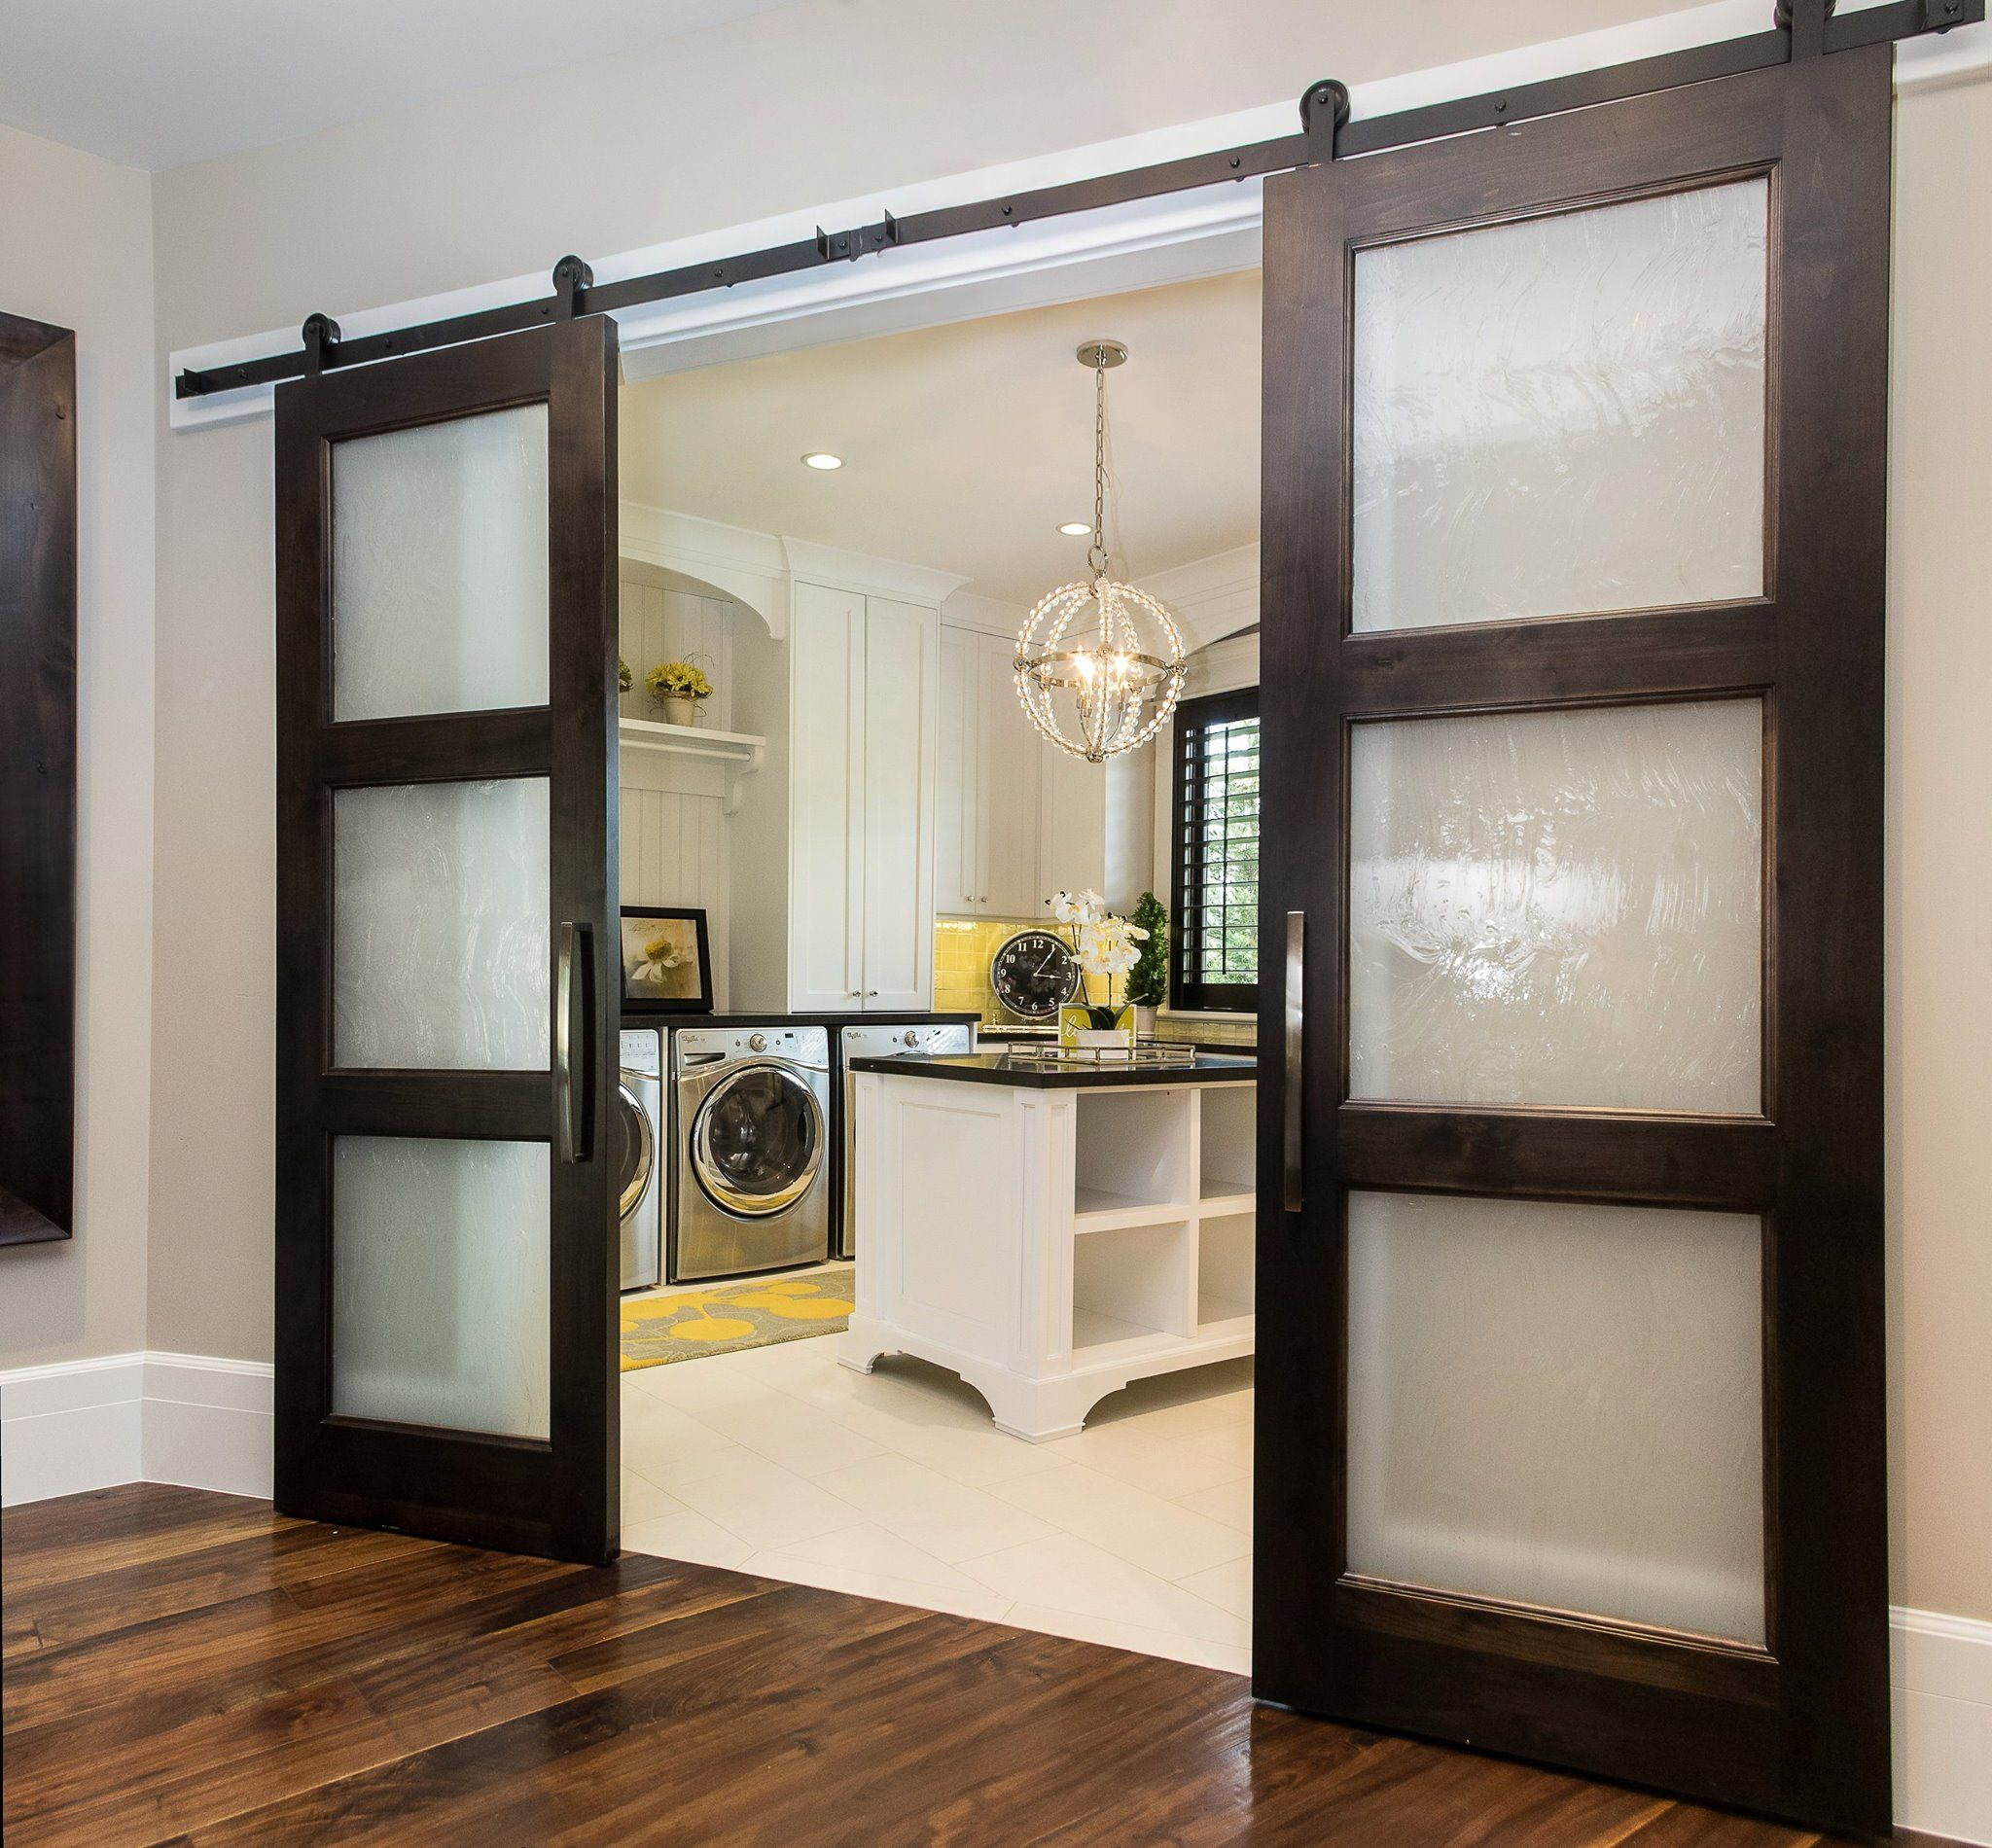 3 Panel Glass Door And Hardware From New Haven Hardware Glass Barn Doors Doors Interior Room Doors